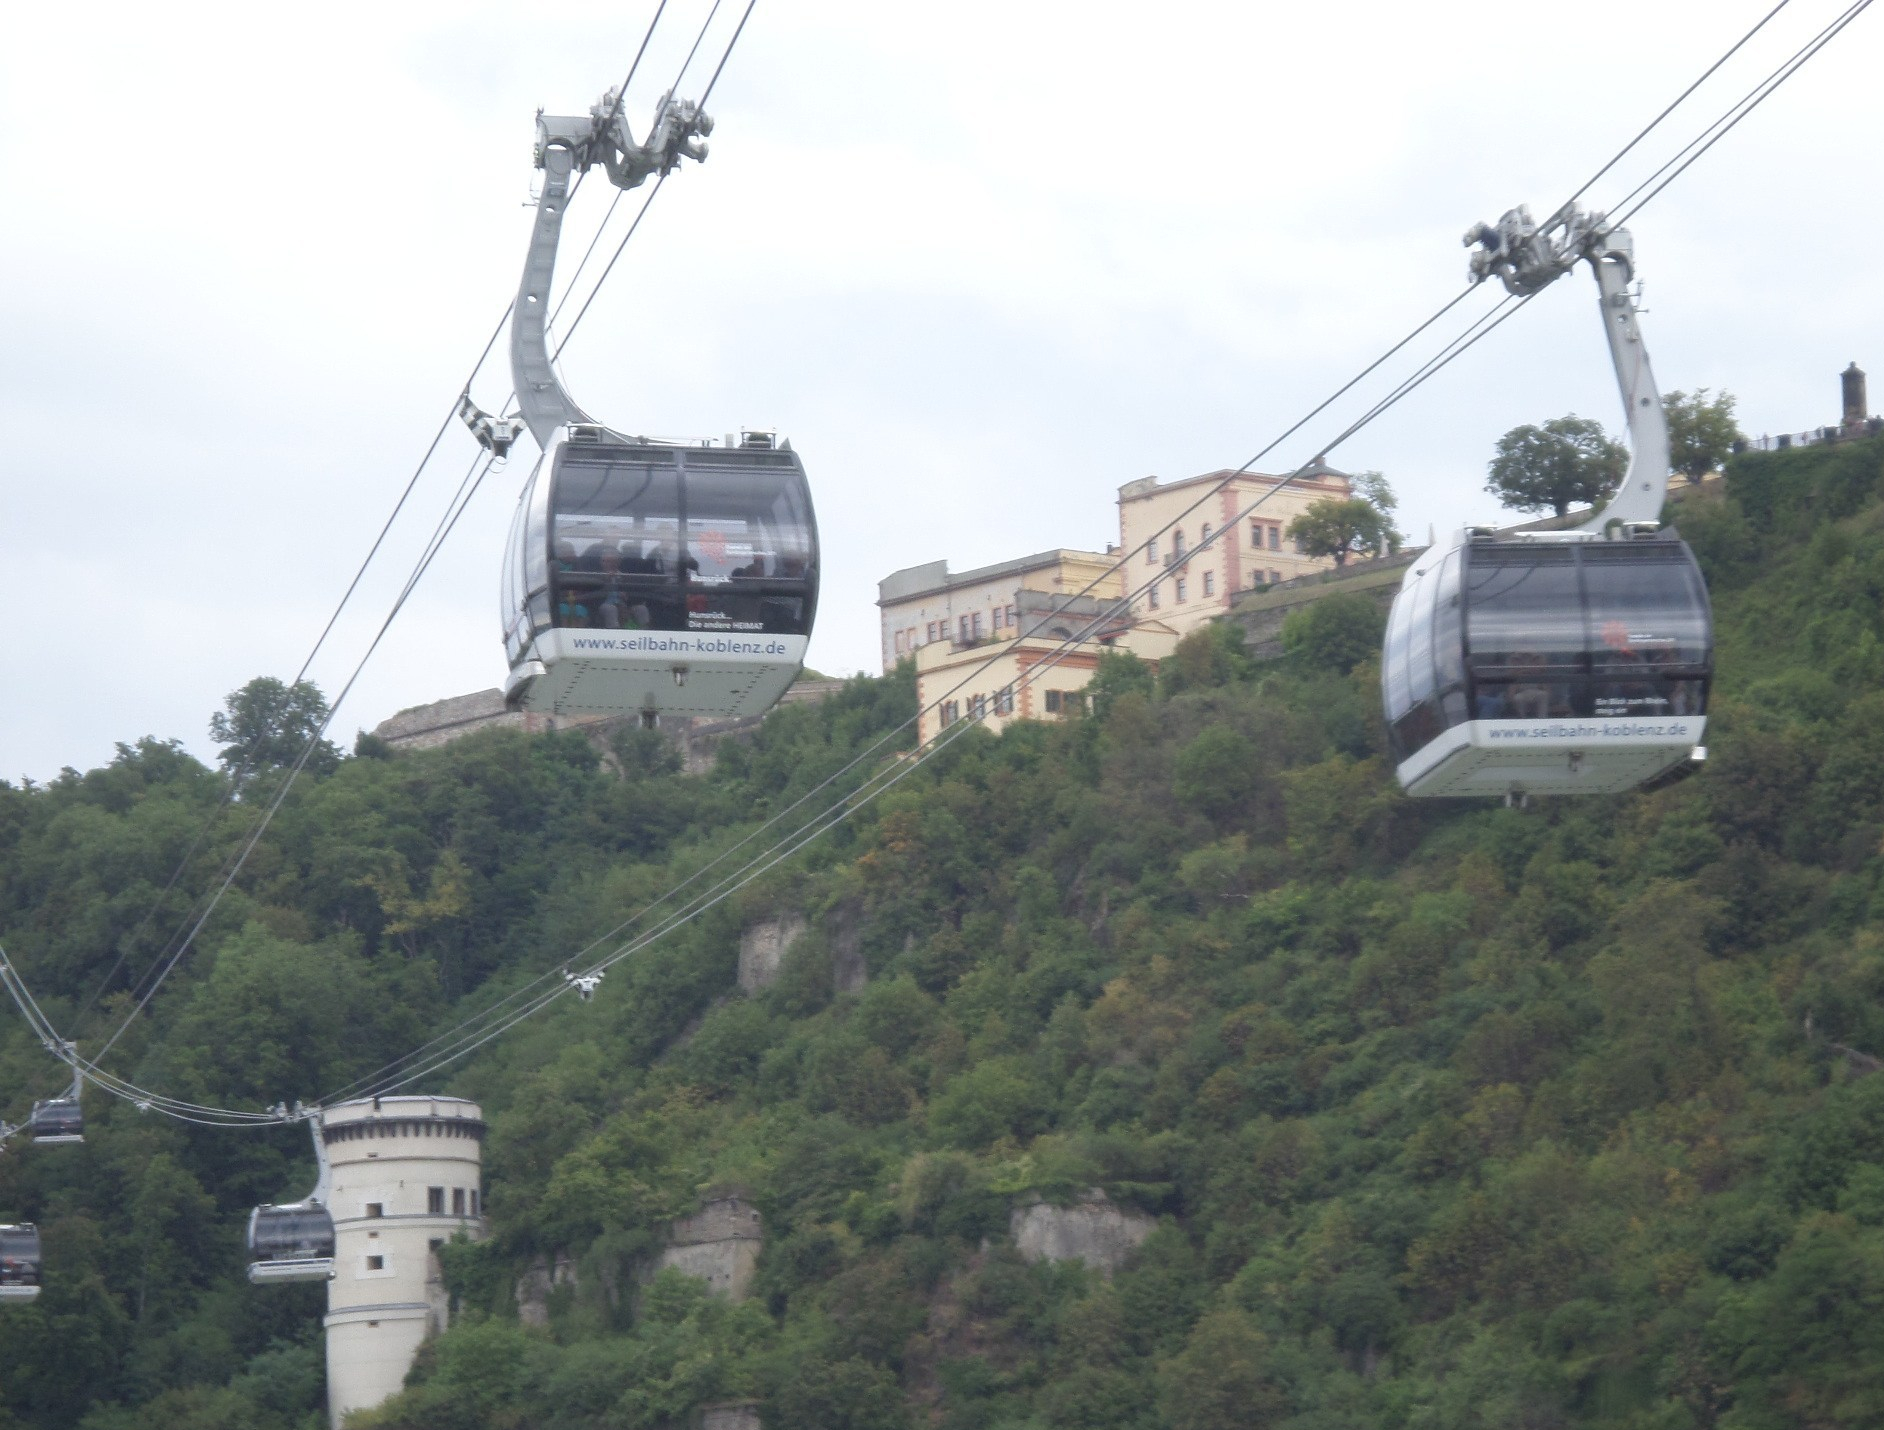 koblenz-cable-car-to-fortress-at-german-corner-aug15